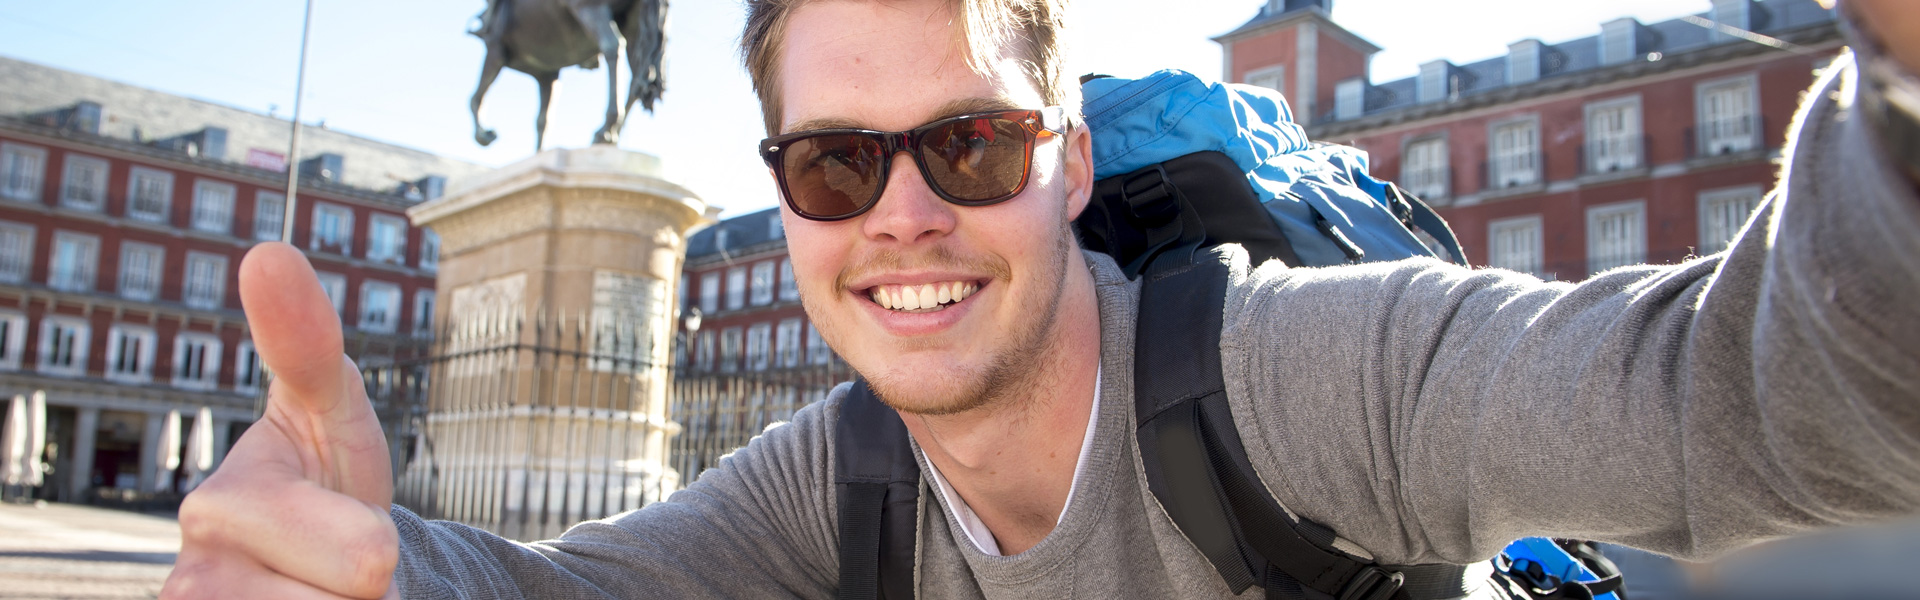 bigstock-Student-Backpacker-Tourist-Tak-81604103_1920x600